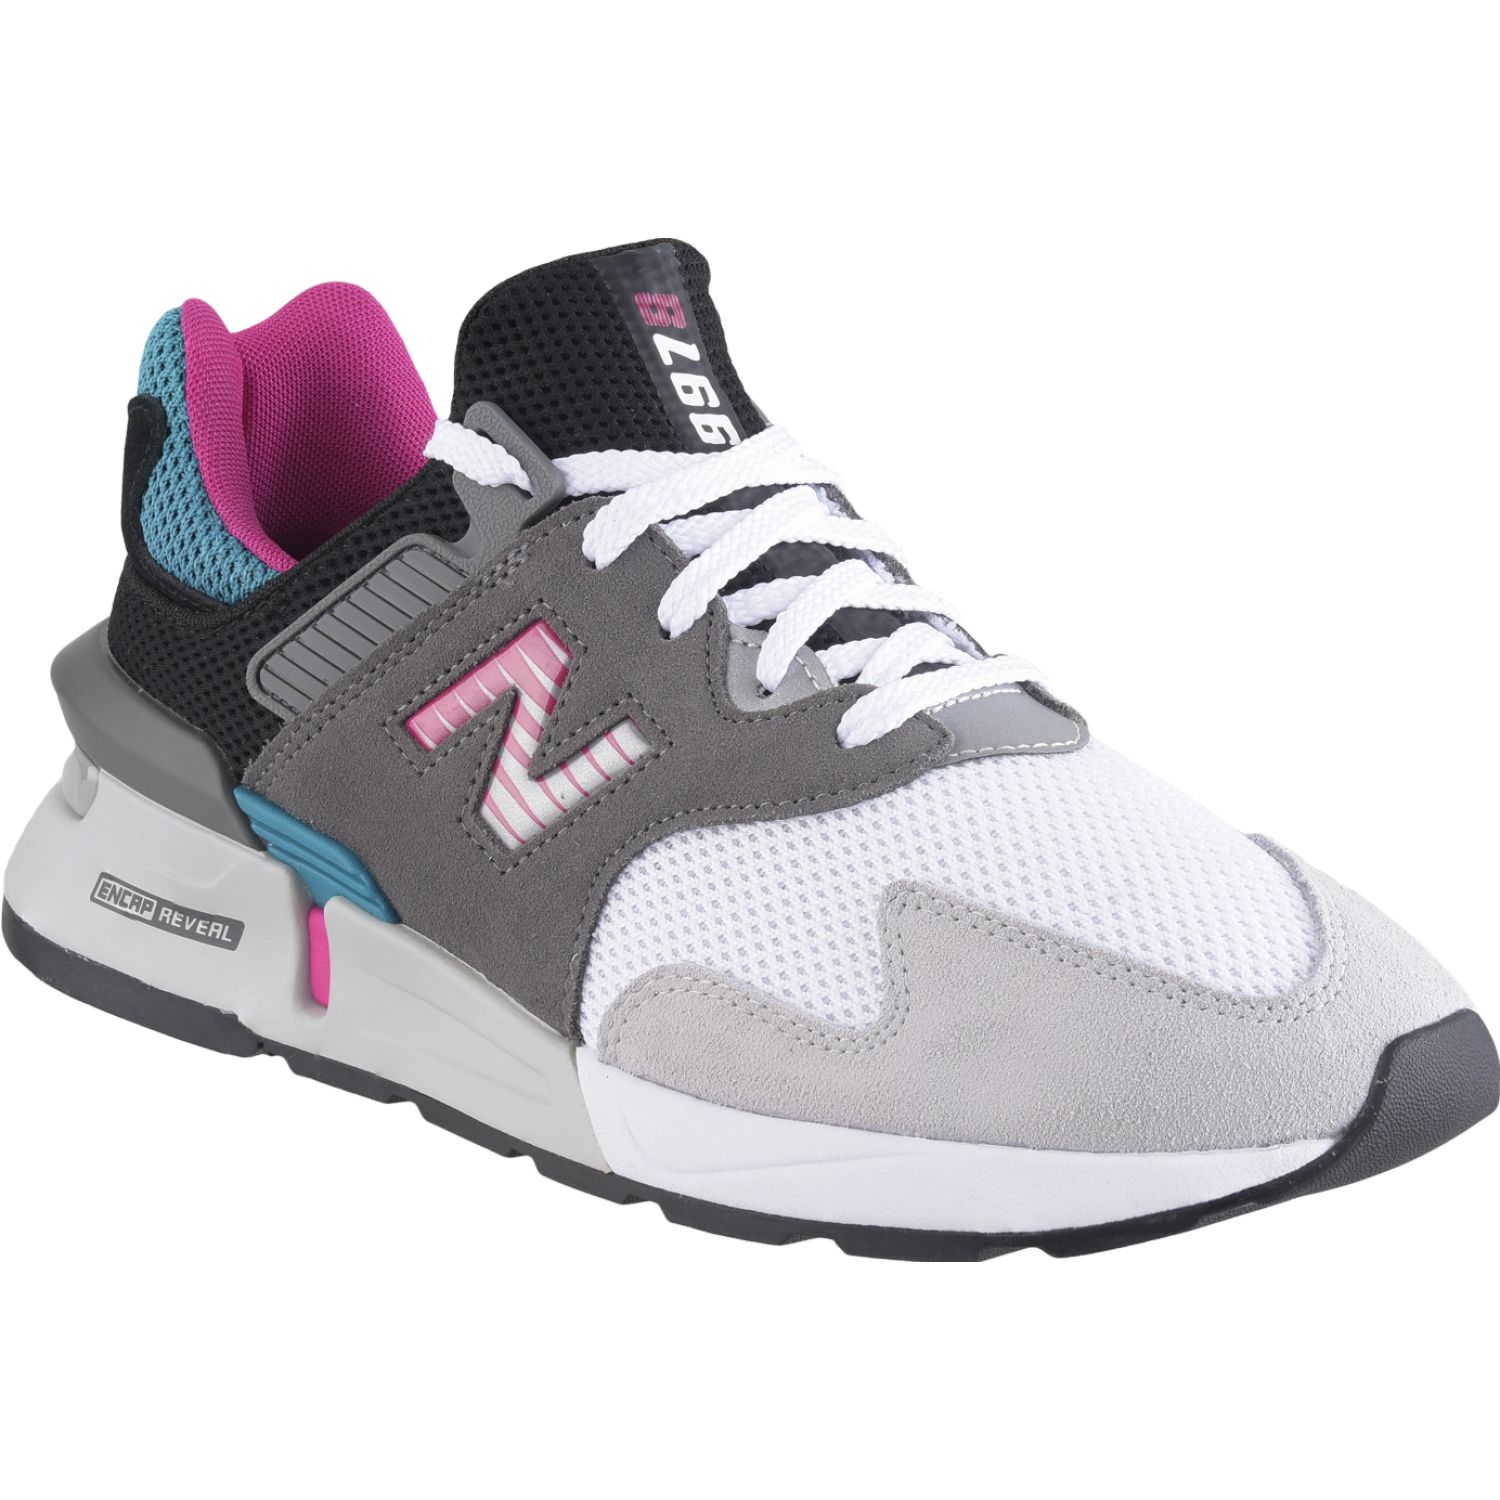 New Balance 997j Gris / rosado Walking